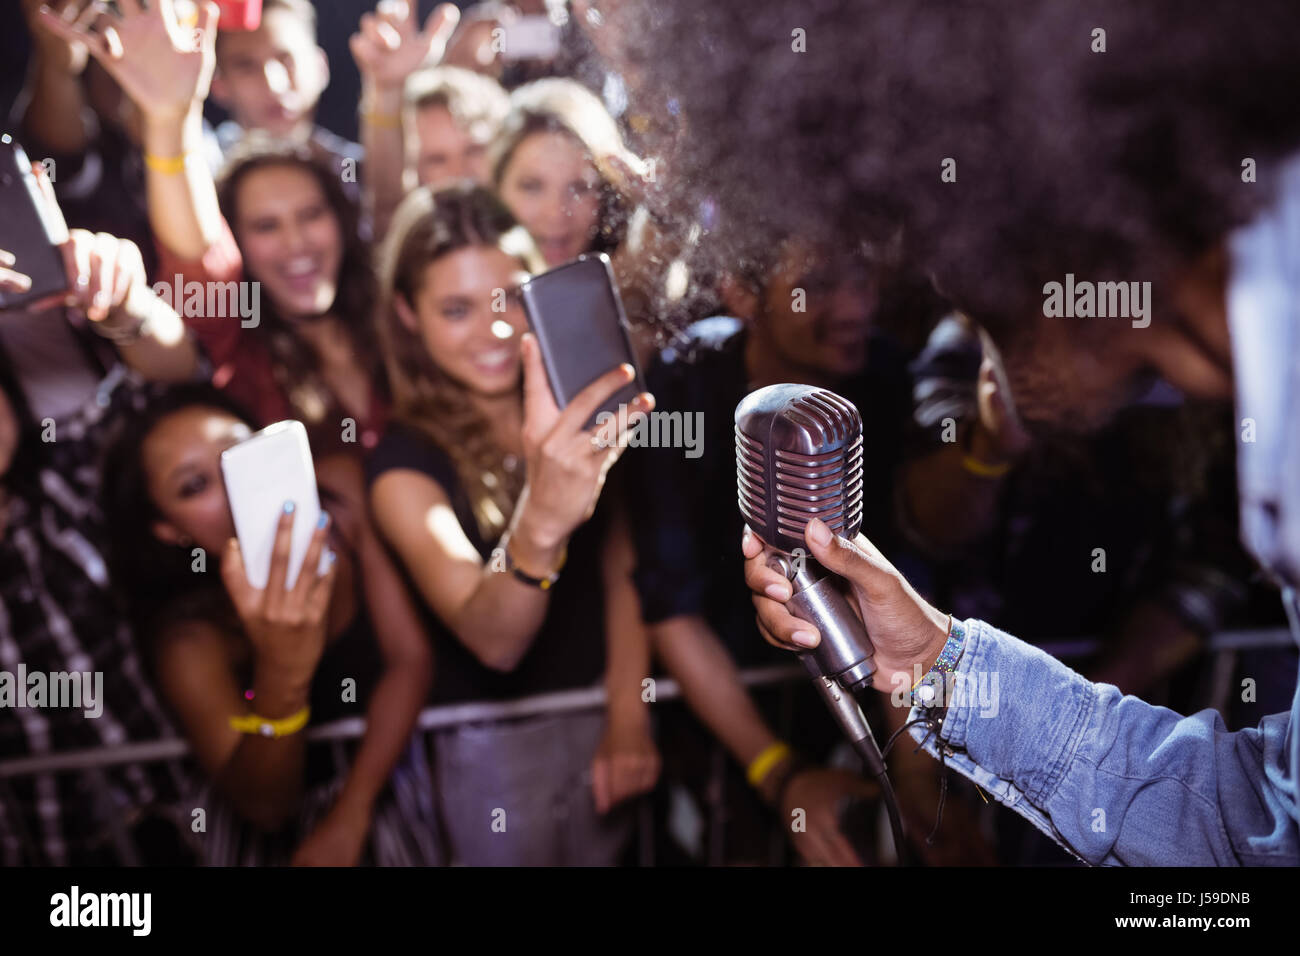 Fans photographing singer performing at nightclub during music festival - Stock Image